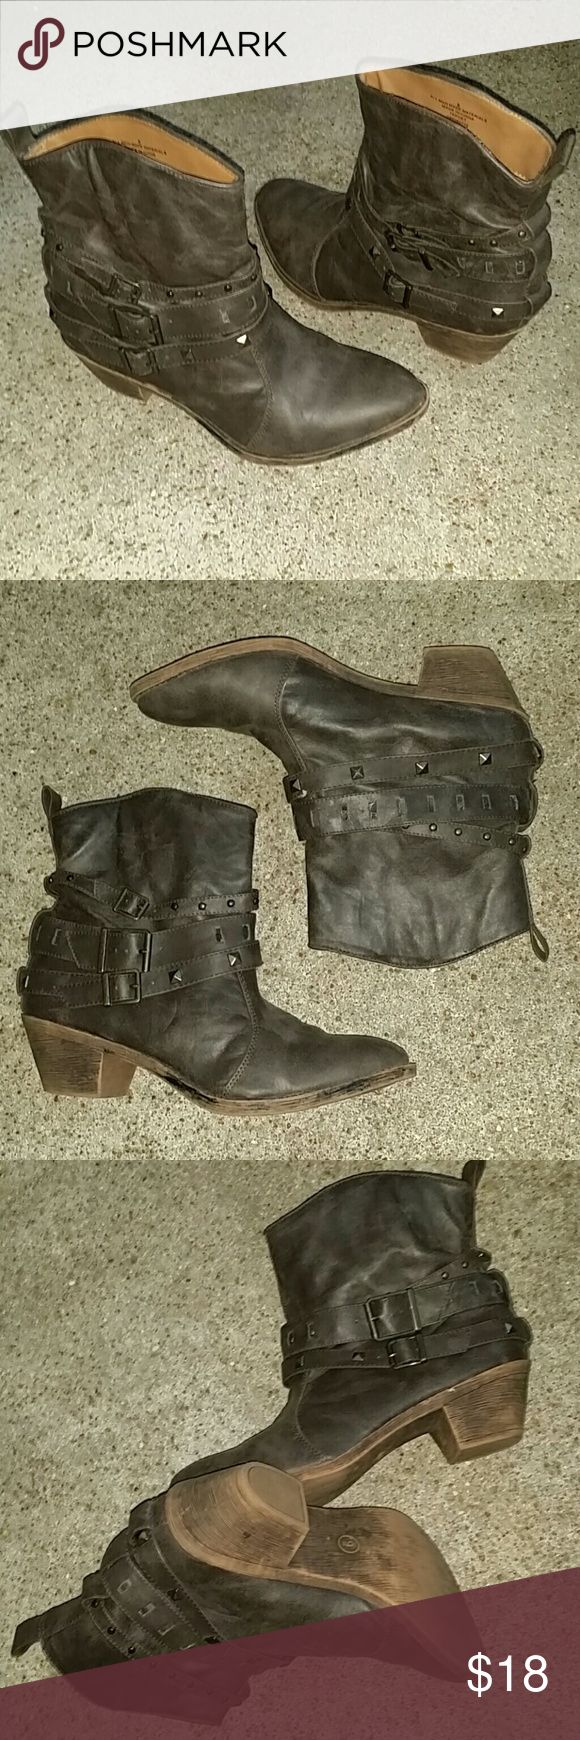 Mossimo Supply Co. enkle boots Mossimo Supply Co. enkle boots. New, never worn. Mossimo Supply Co. Shoes Ankle Boots & Booties